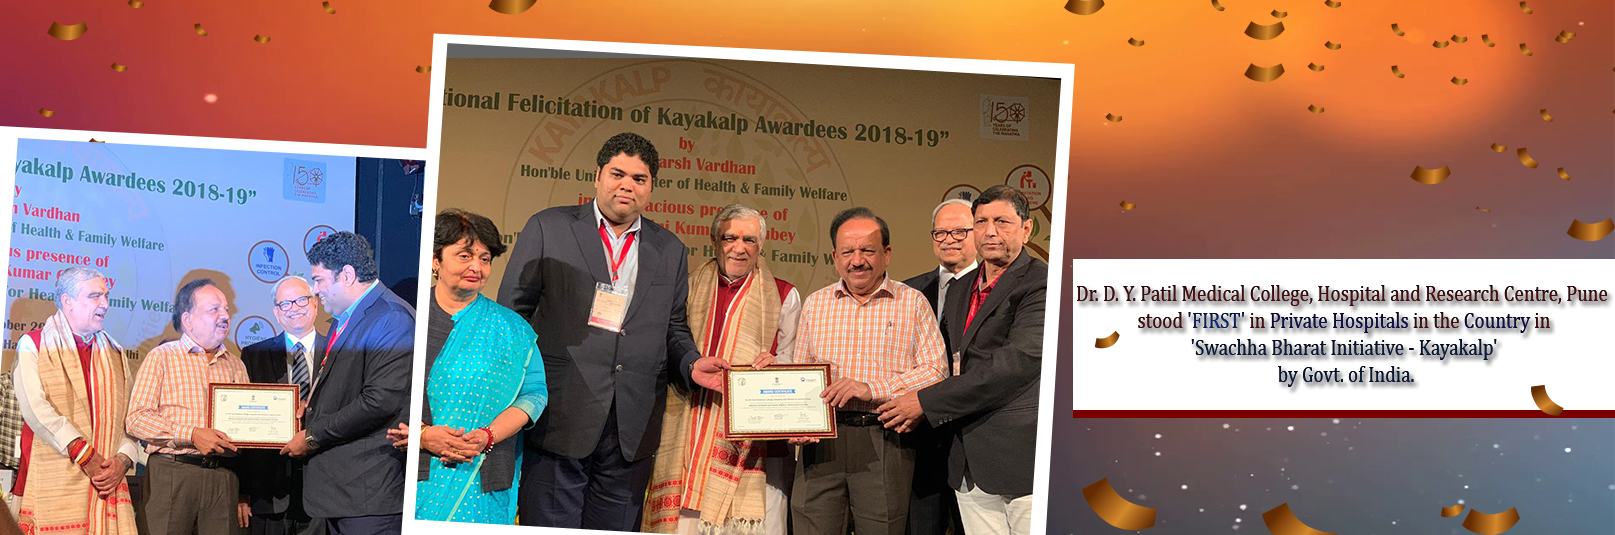 """""""Swaccha Bharat Initiative - Kayakalp"""" among  Private Hospitals in the Country"""